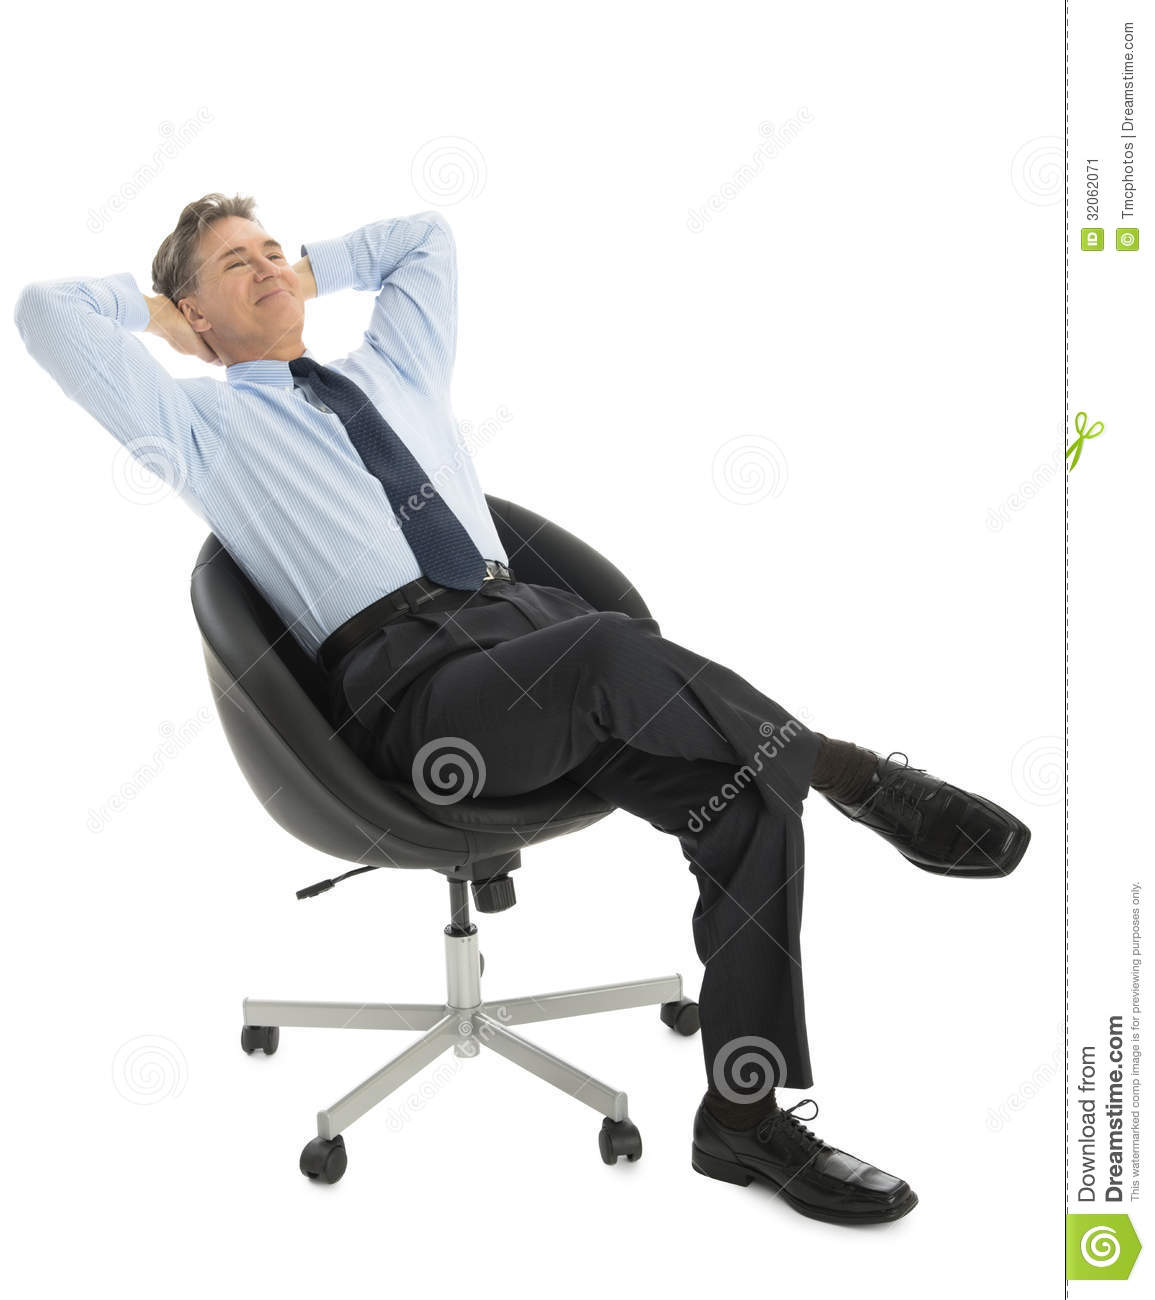 sitting chair chairs for showers invalids relaxed businessman with hands behind head on